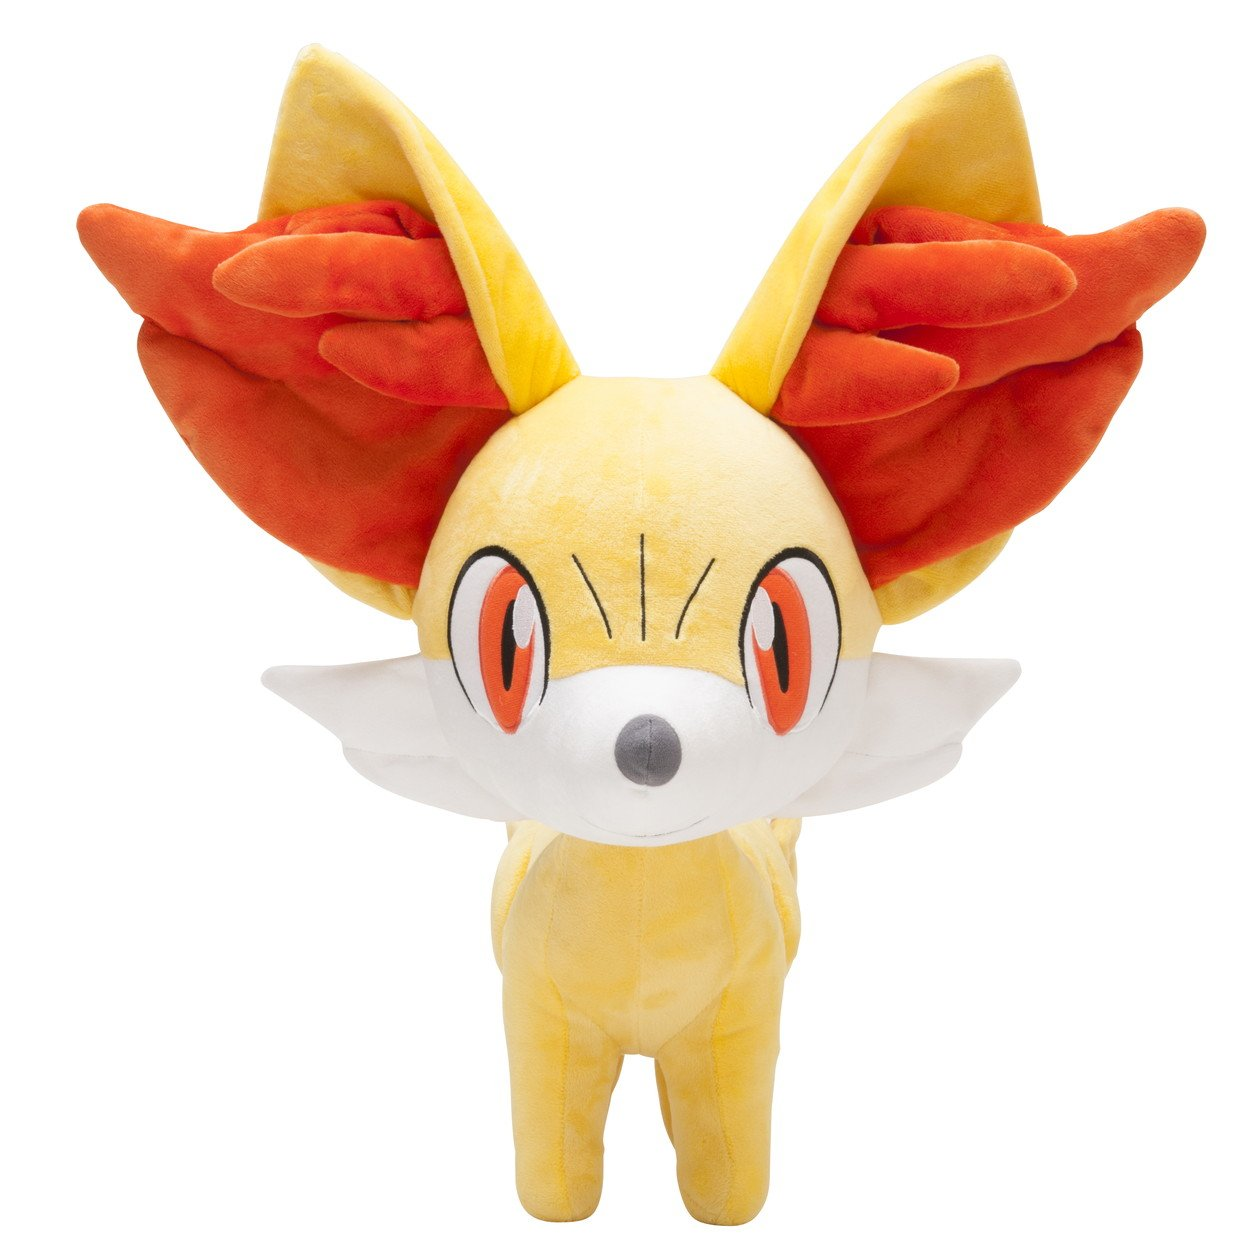 amazoncom pokemon center fennekinfokko life size plush doll toys games